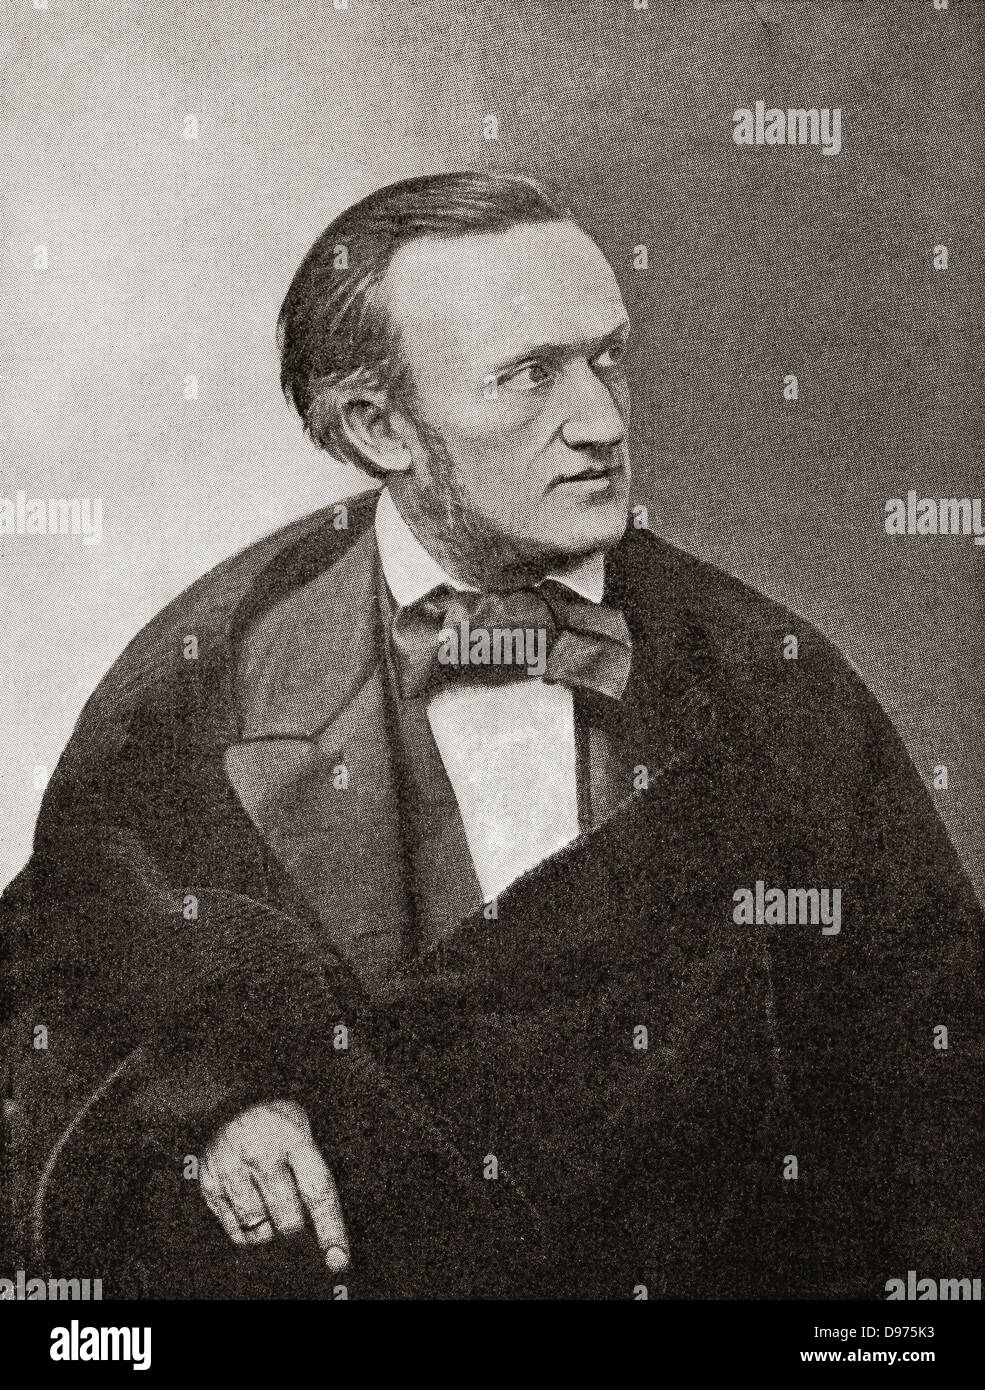 Wilhelm Richard Wagner, 1813 – 1883. German composer, theatre director, polemicist and conductor. - Stock Image